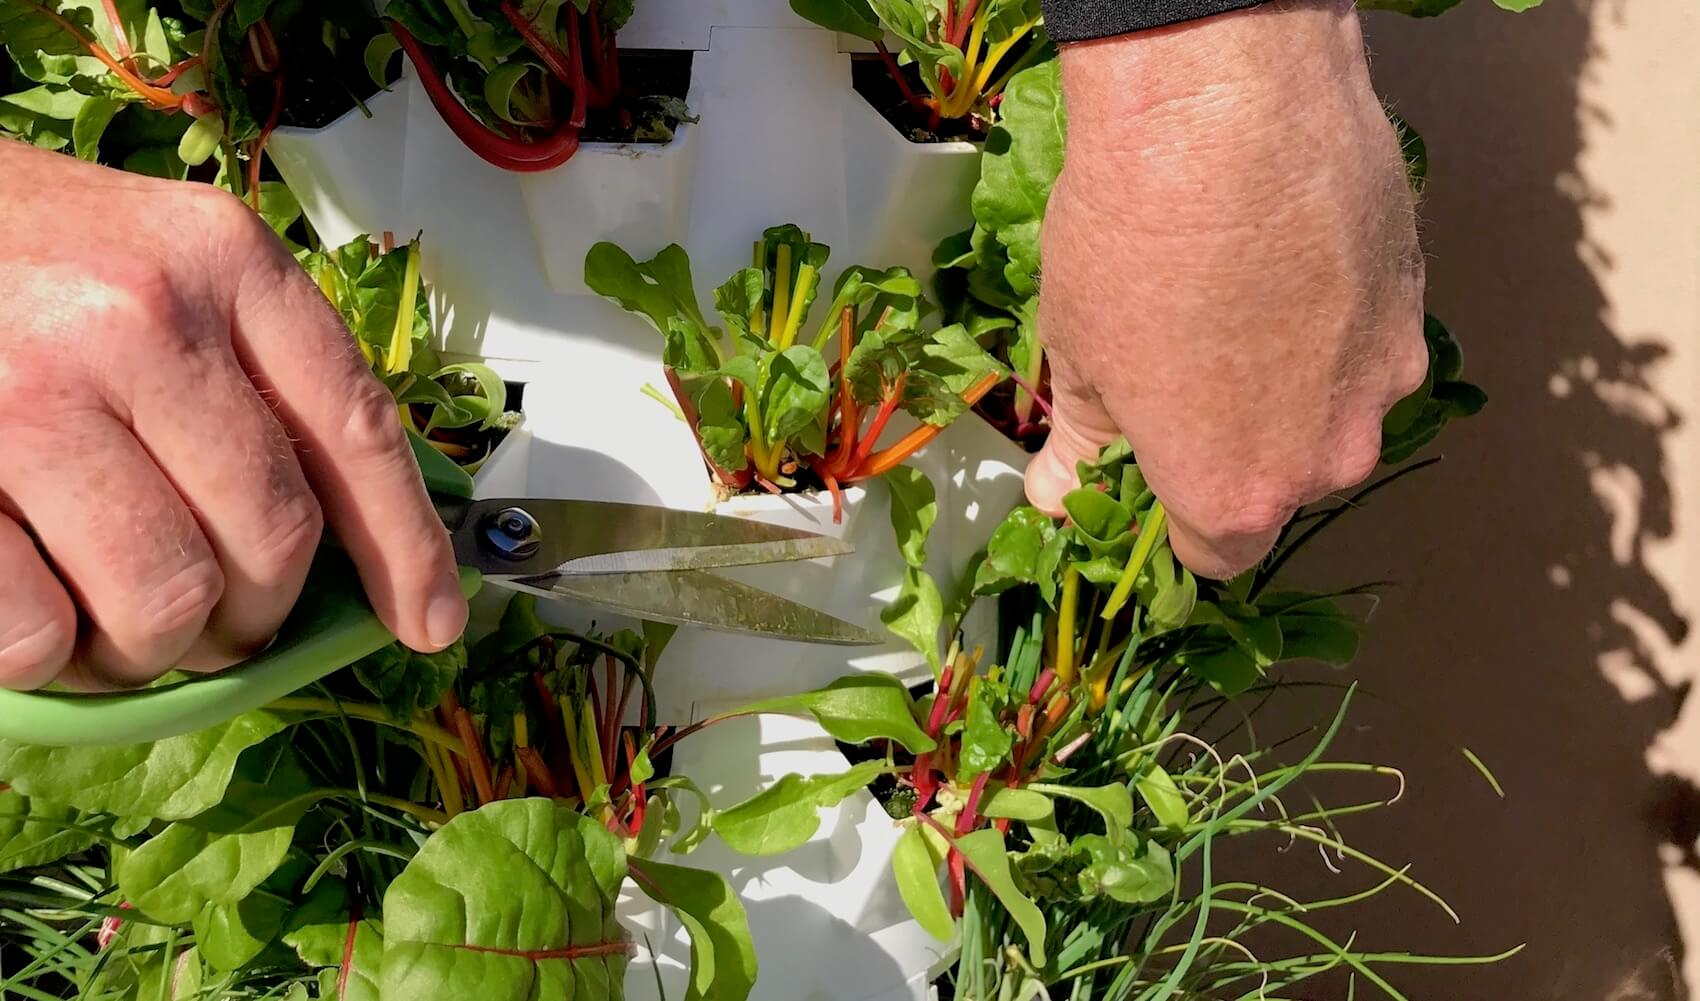 Microgreens Growing Microgreens is Easy